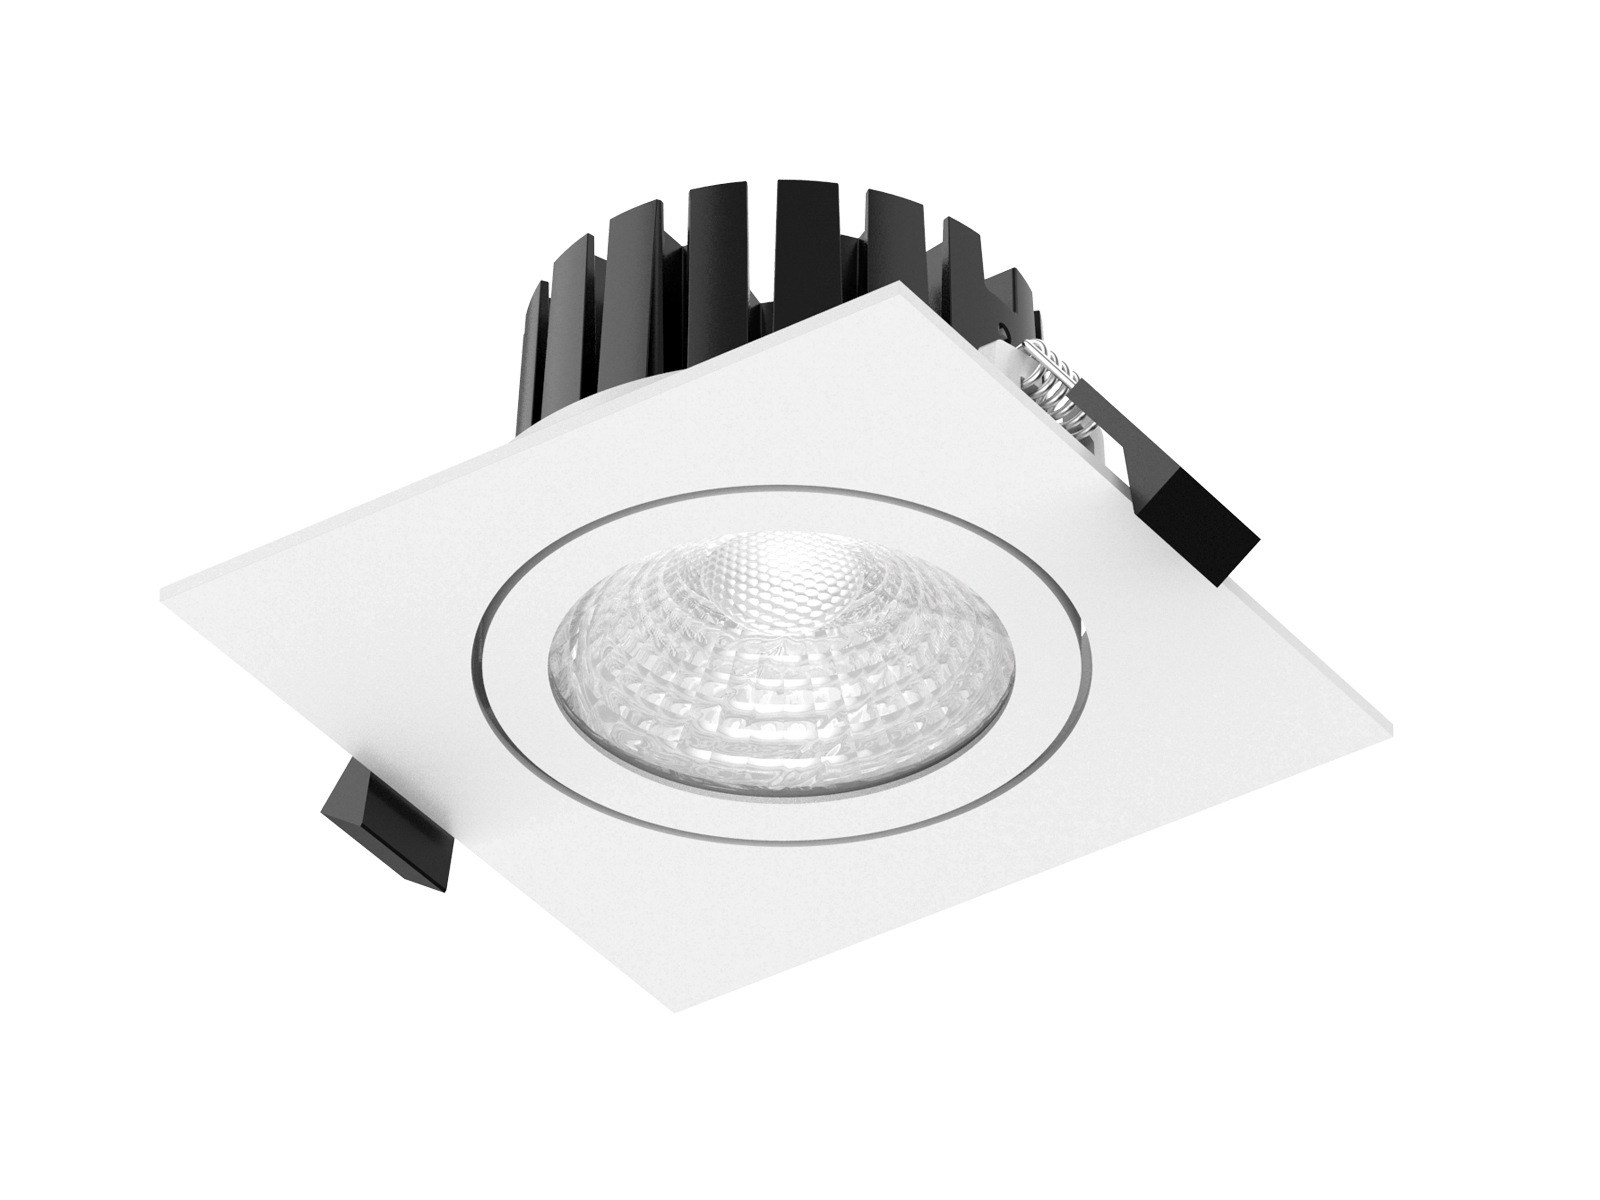 CL104 LED Downlight